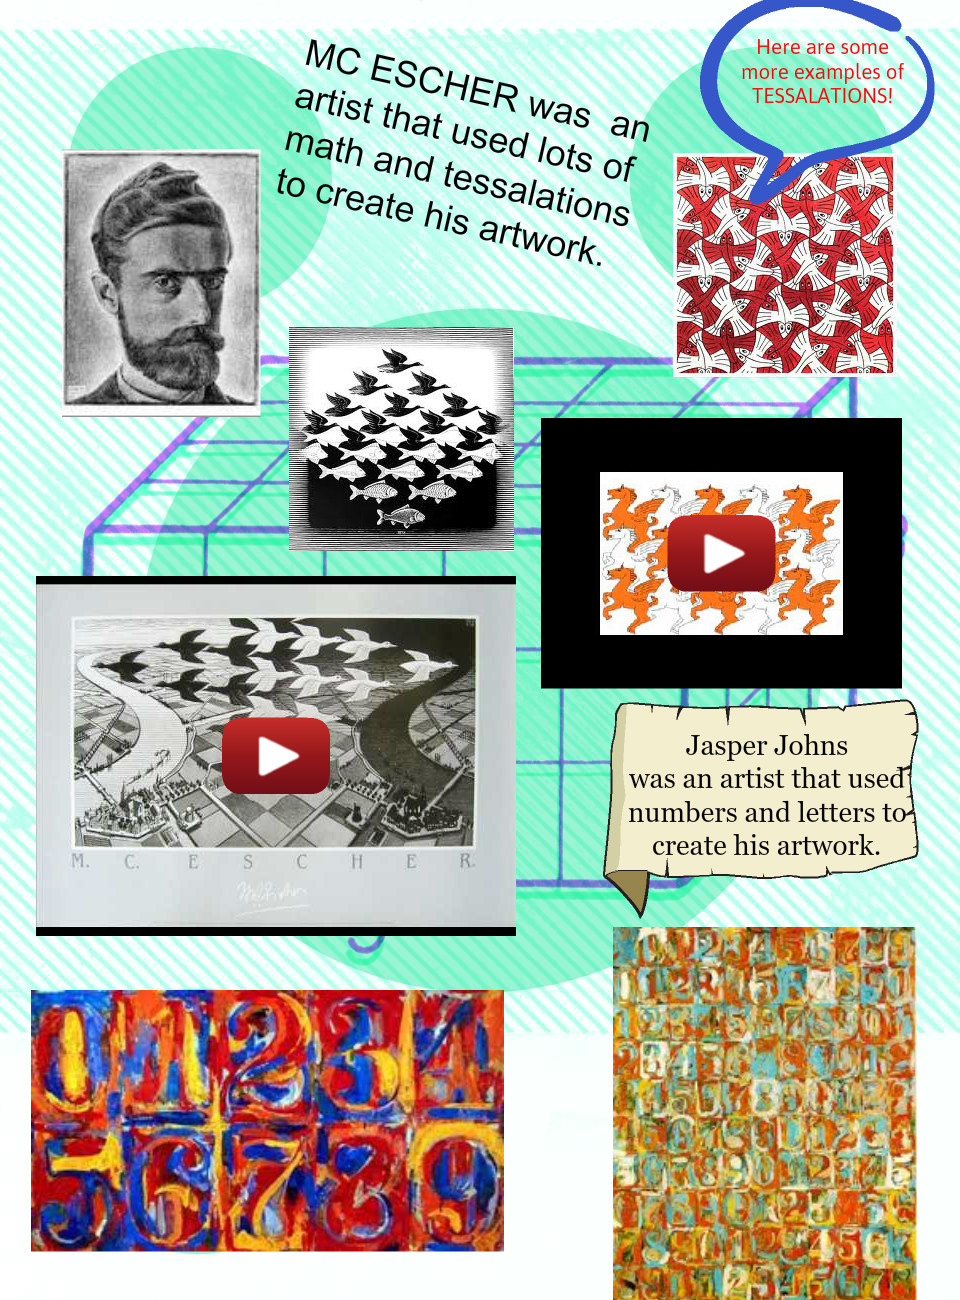 MC Escher and jasper johns